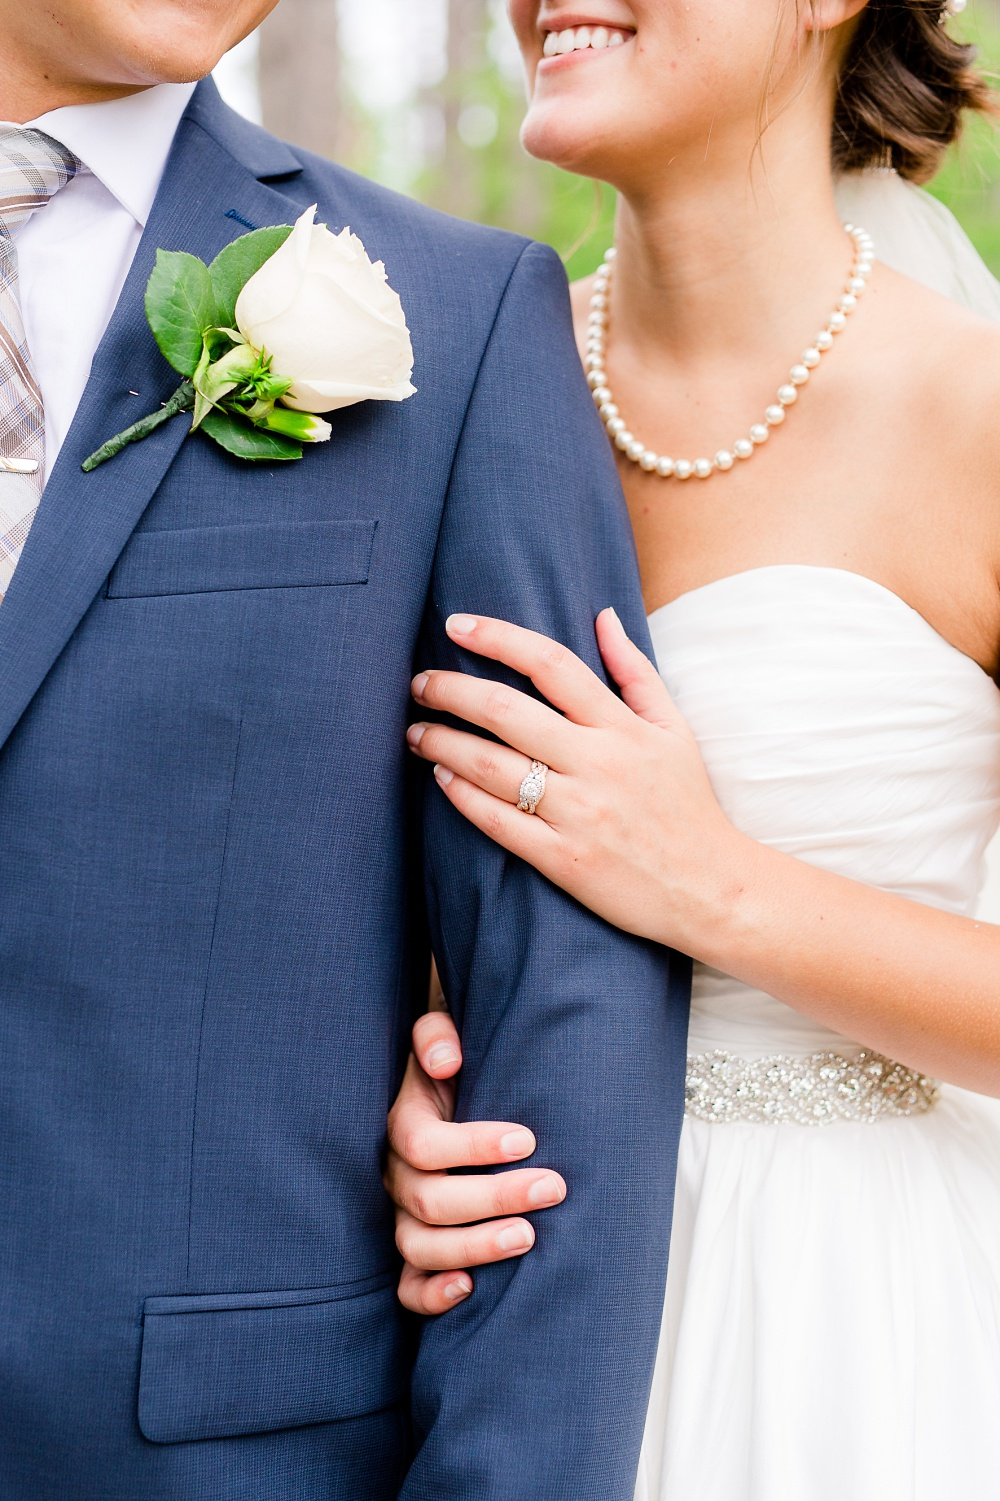 Wolf Lake, MN Country Styled Wedding, White Dress, Blue Suite | Photographed by Amber Langerud Photography | Close-up details of bride's hands and wedding ring